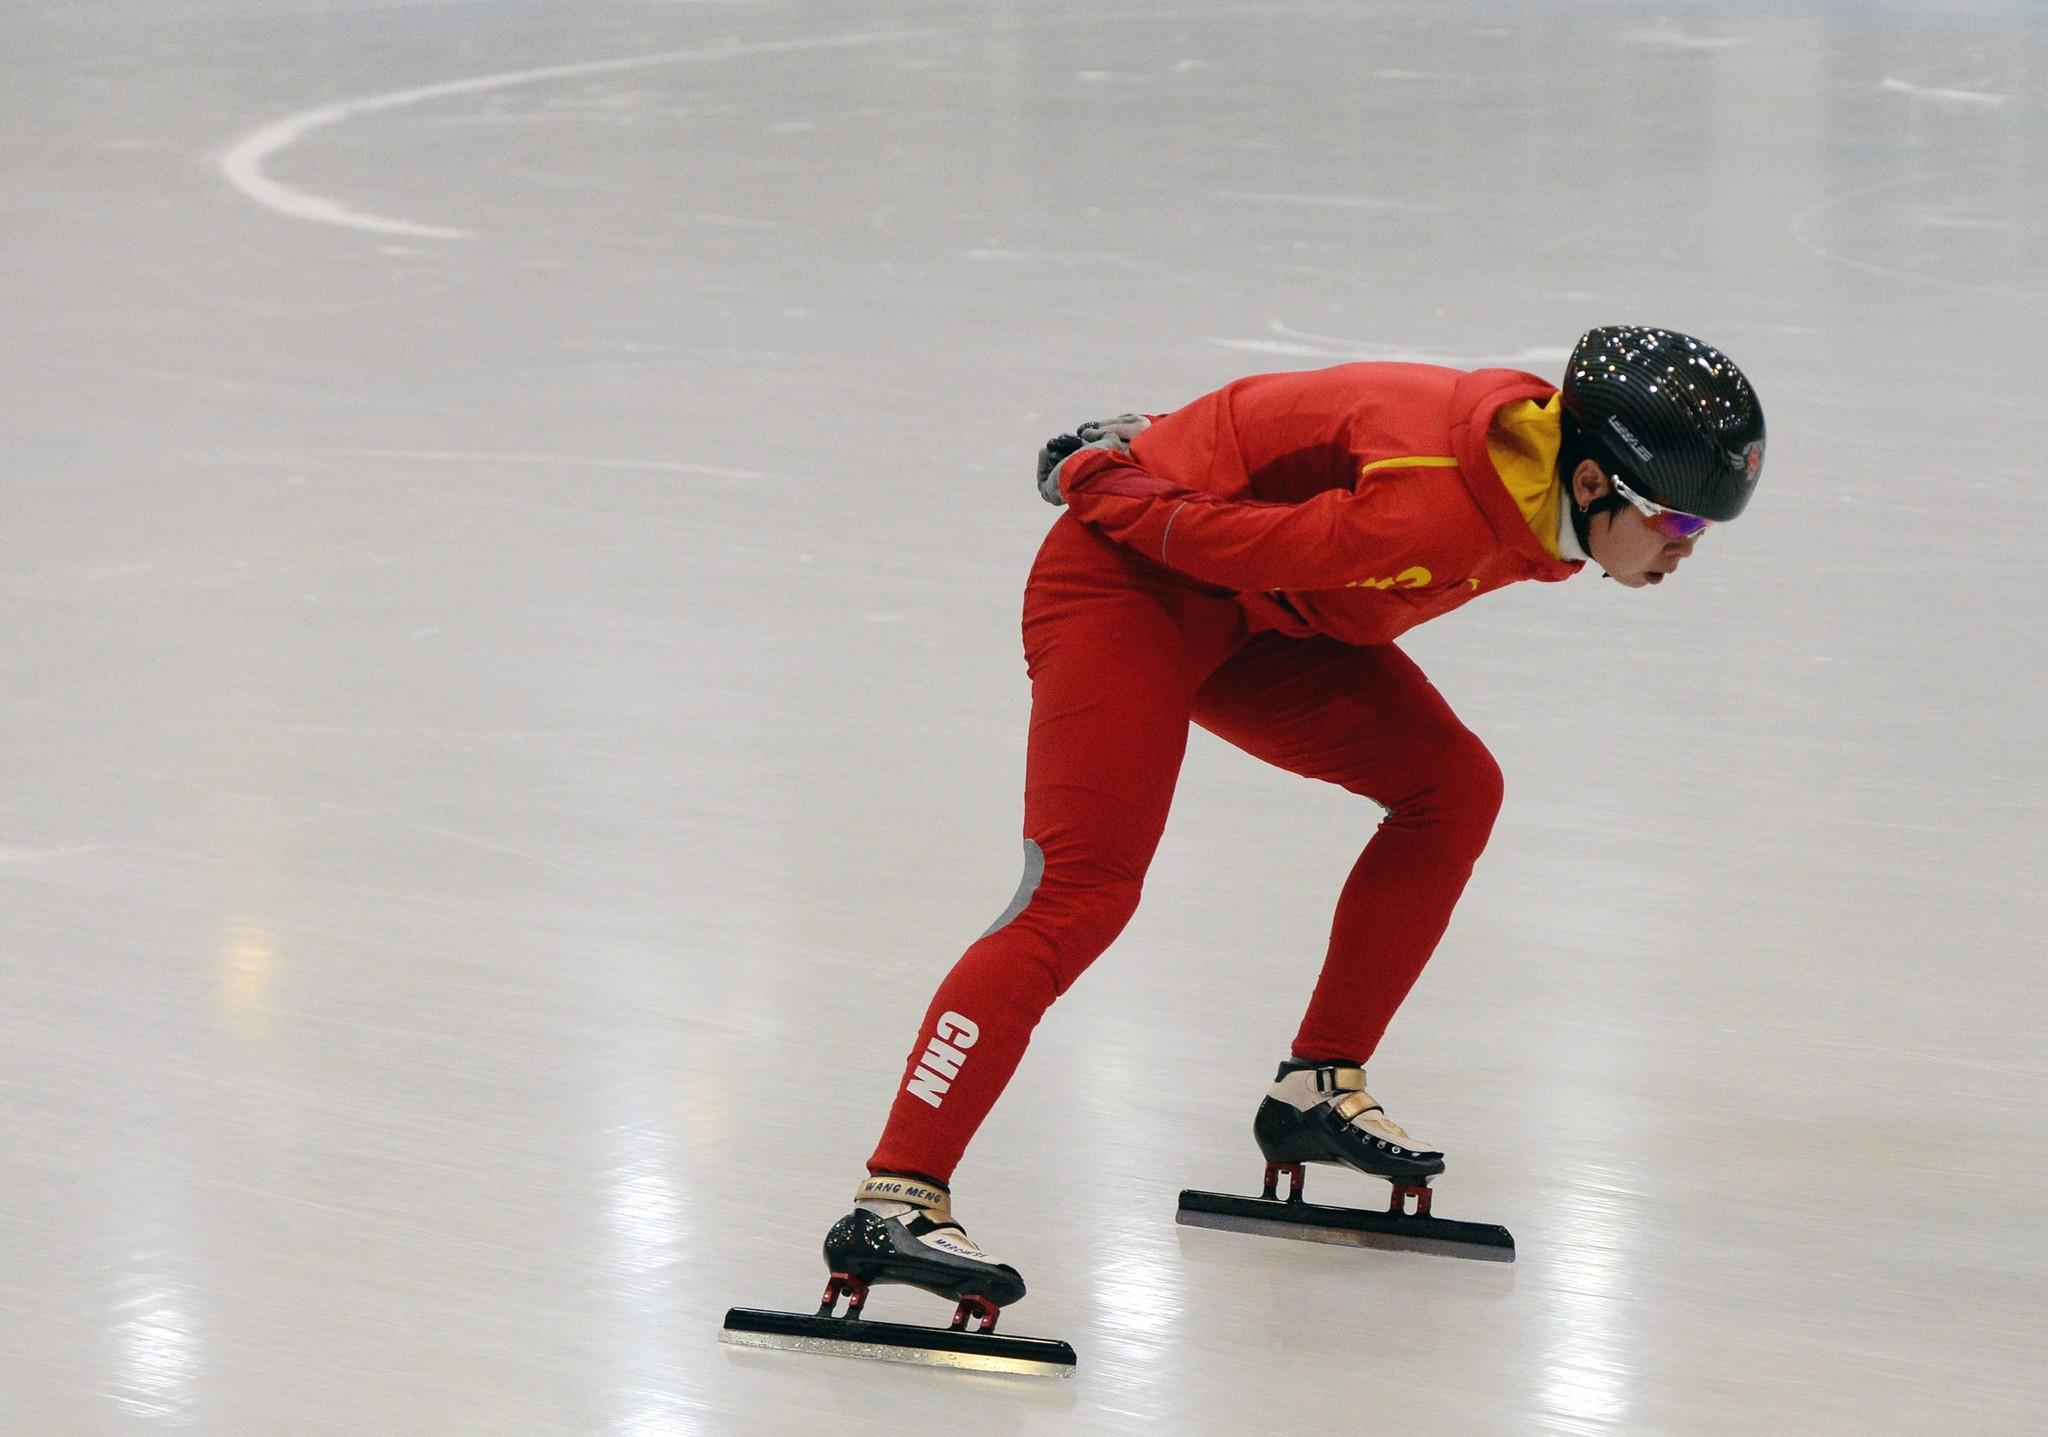 Chinese short-track speedskater Wang Meng during a practice session in Beijing. (Mark Ralston/Getty Photo)